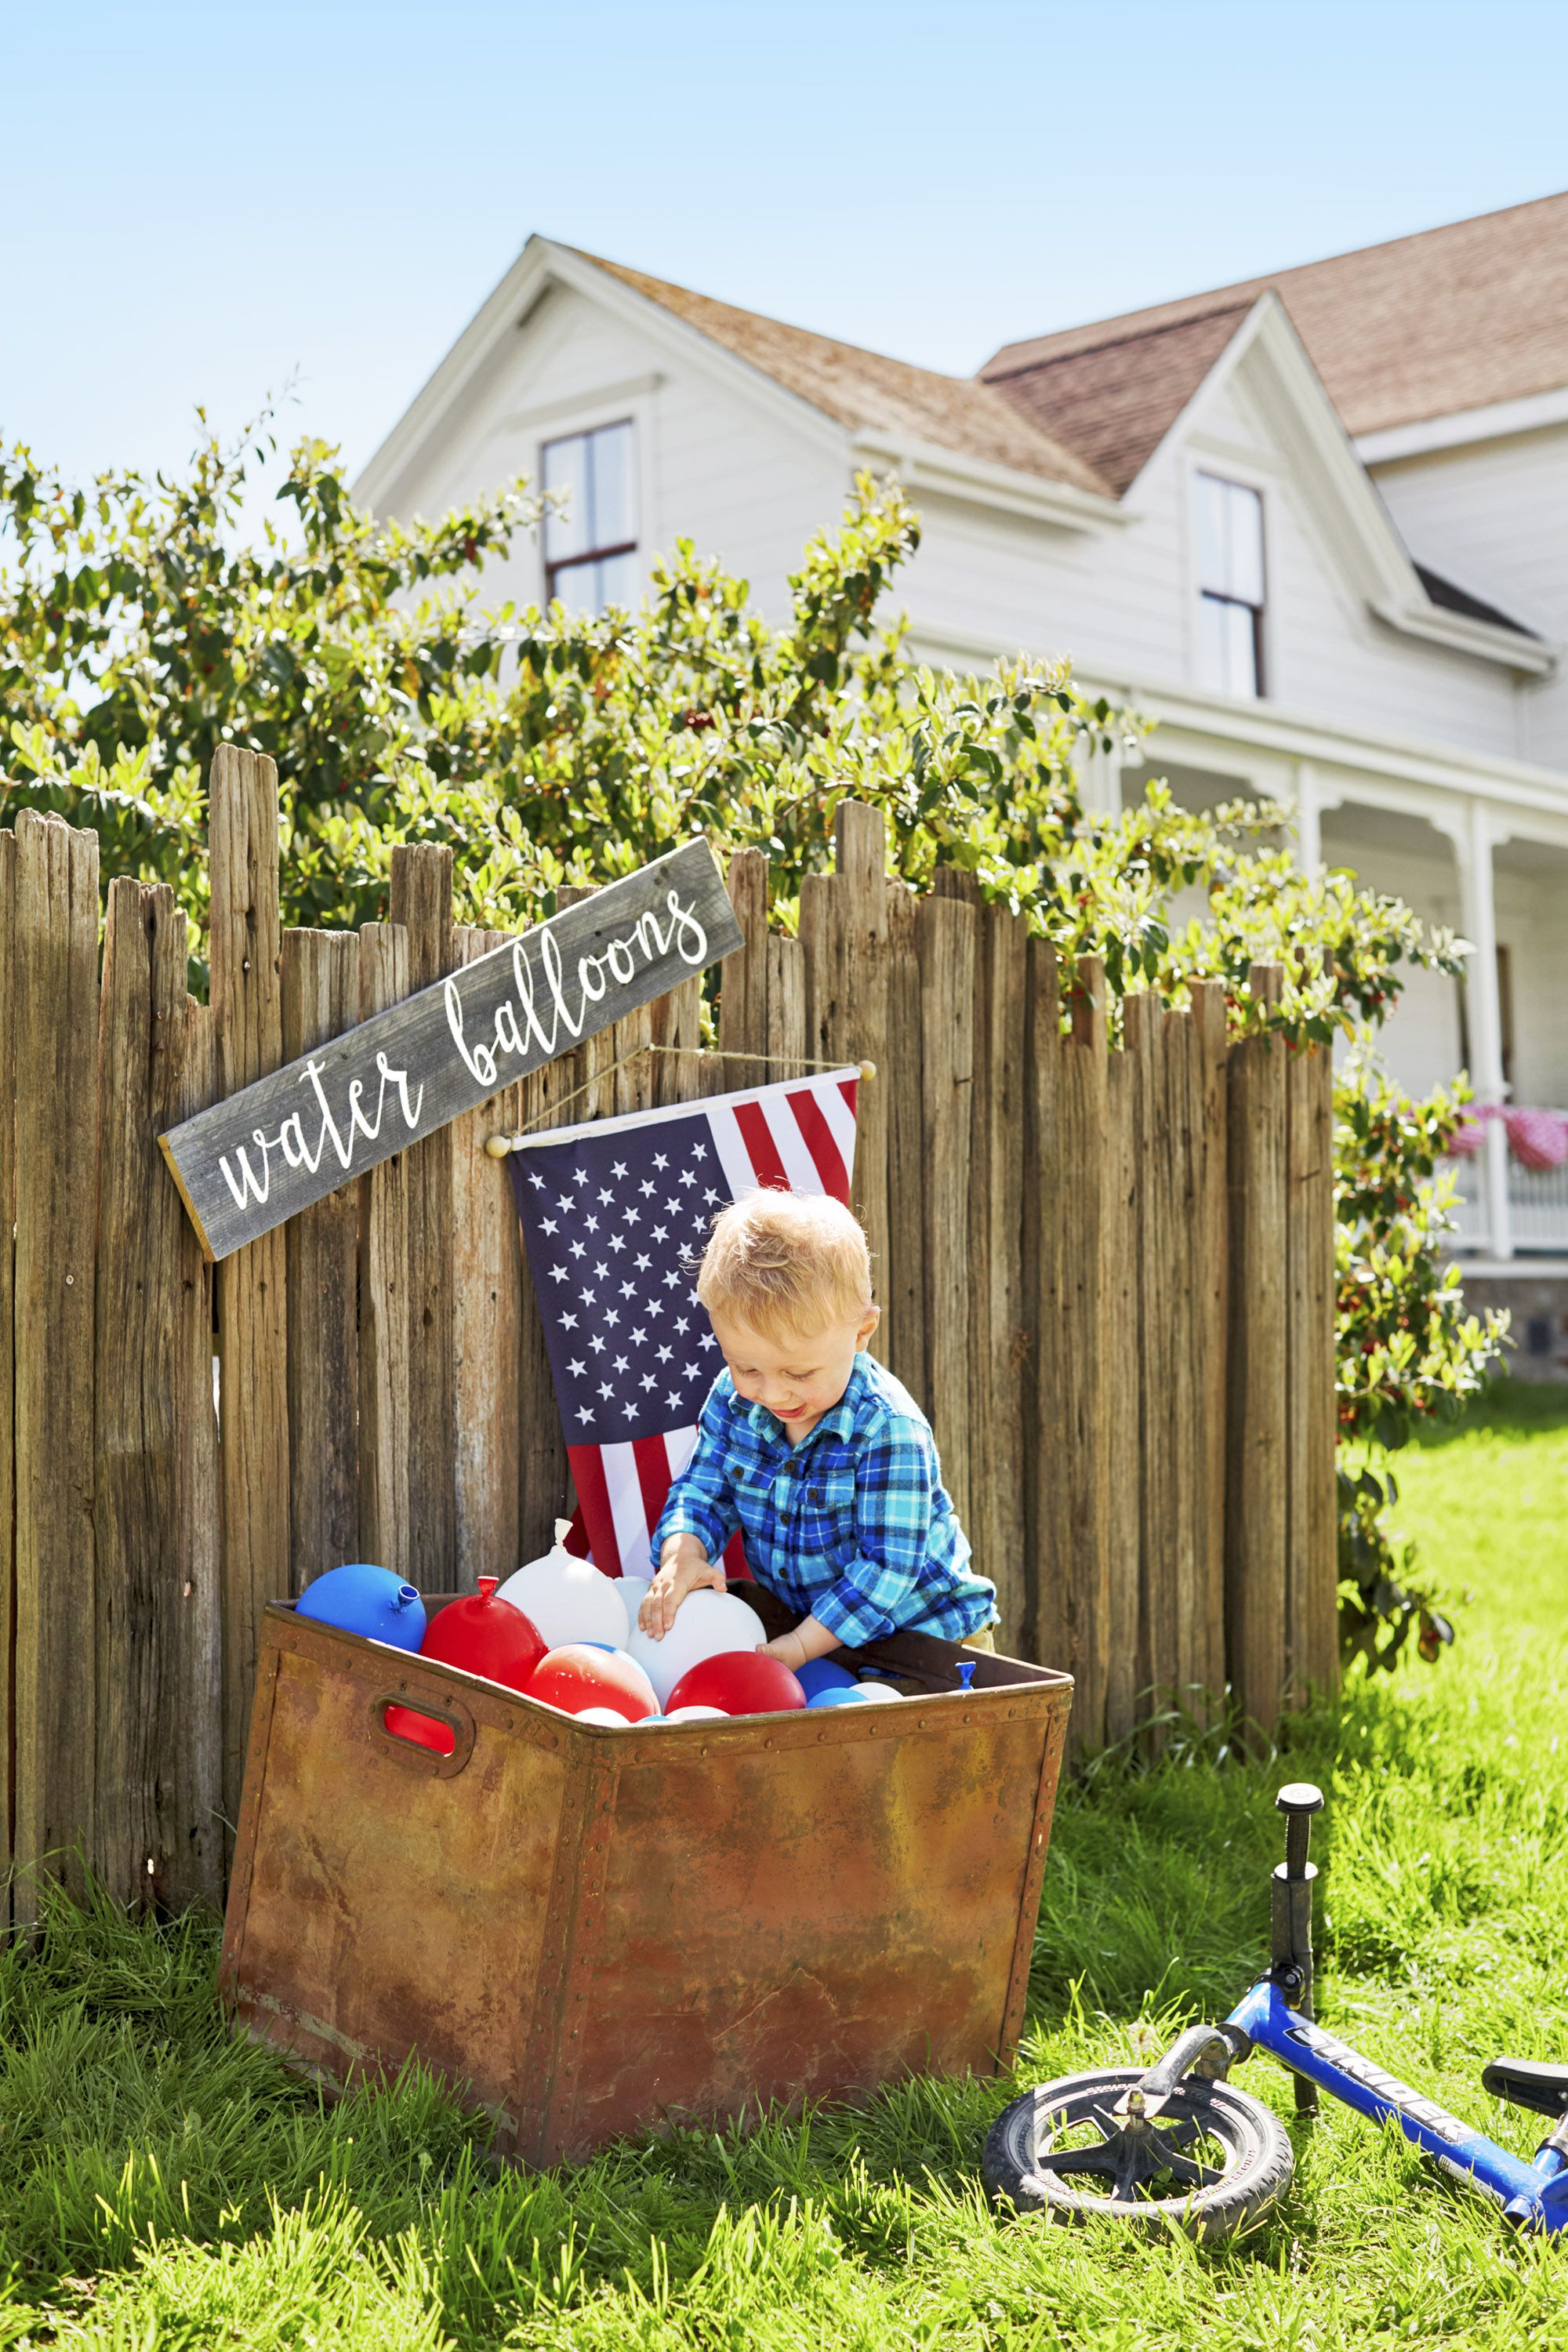 15 Best 4th Of July Decorations Under 30